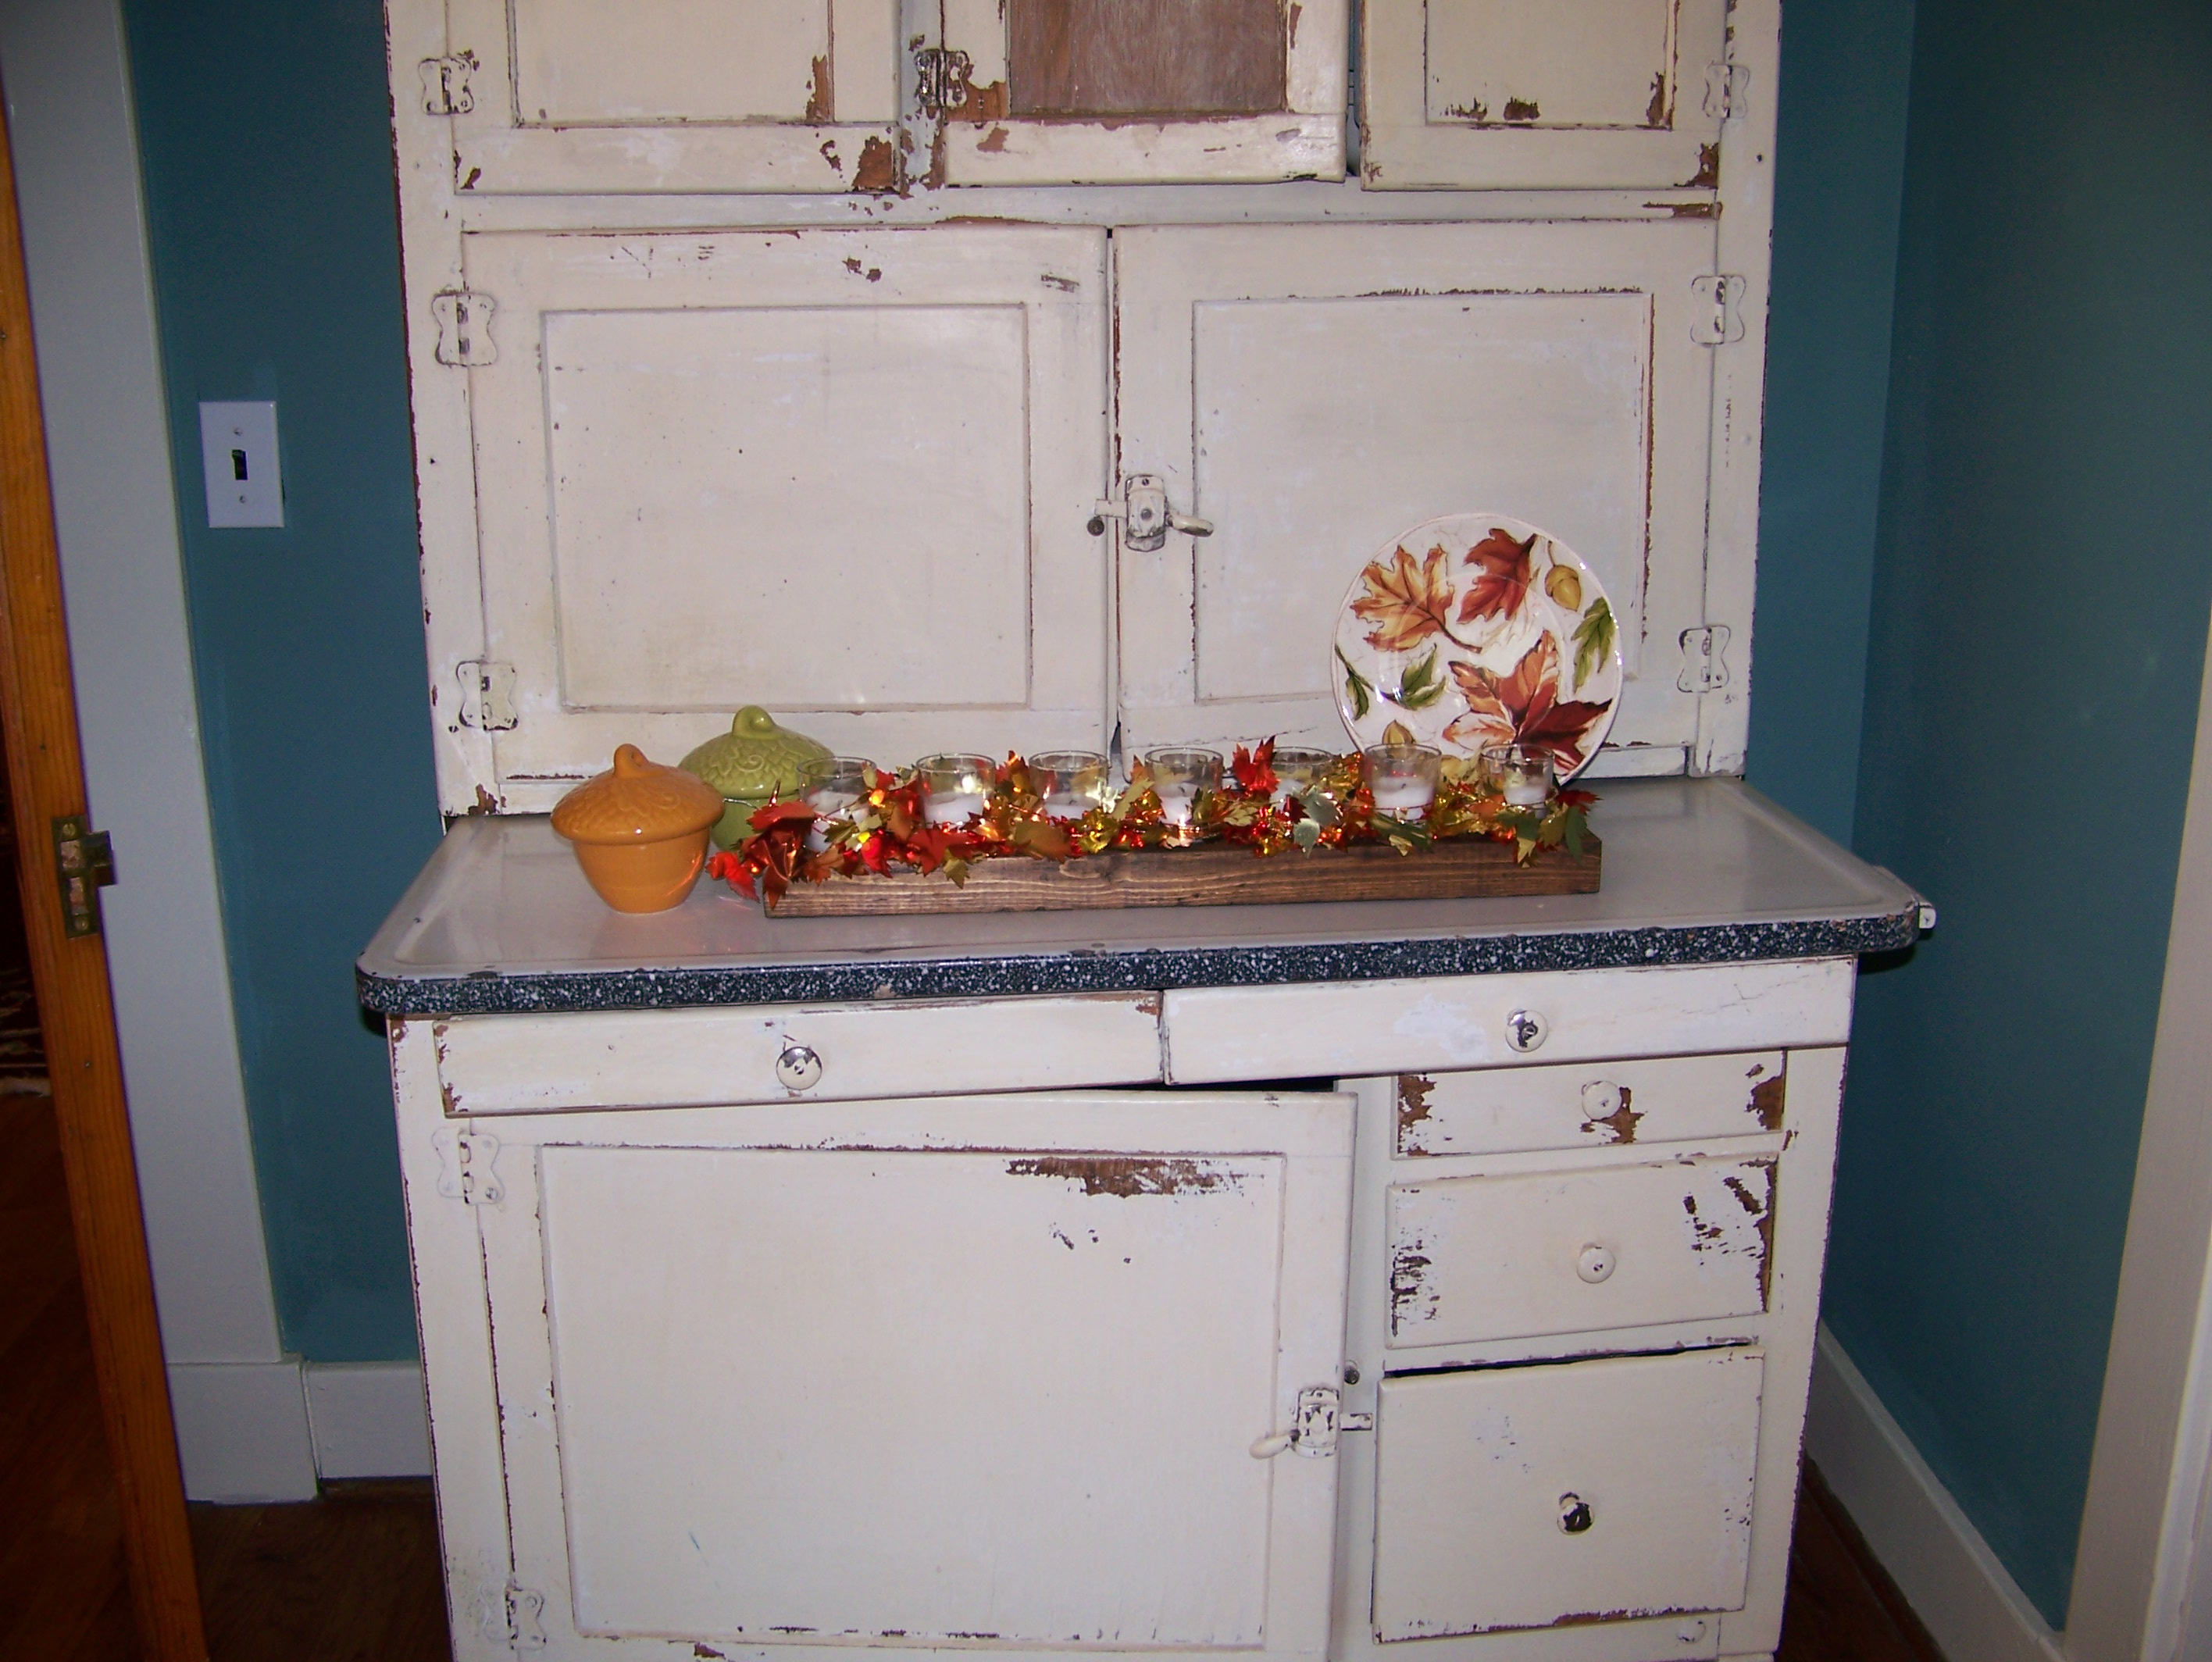 Or Buffet Vignettes But Infected Inspired By All Of Your Wonderful Fall Decorating Blogs Out There I Made A Few Autumn Changes In The Dining Room